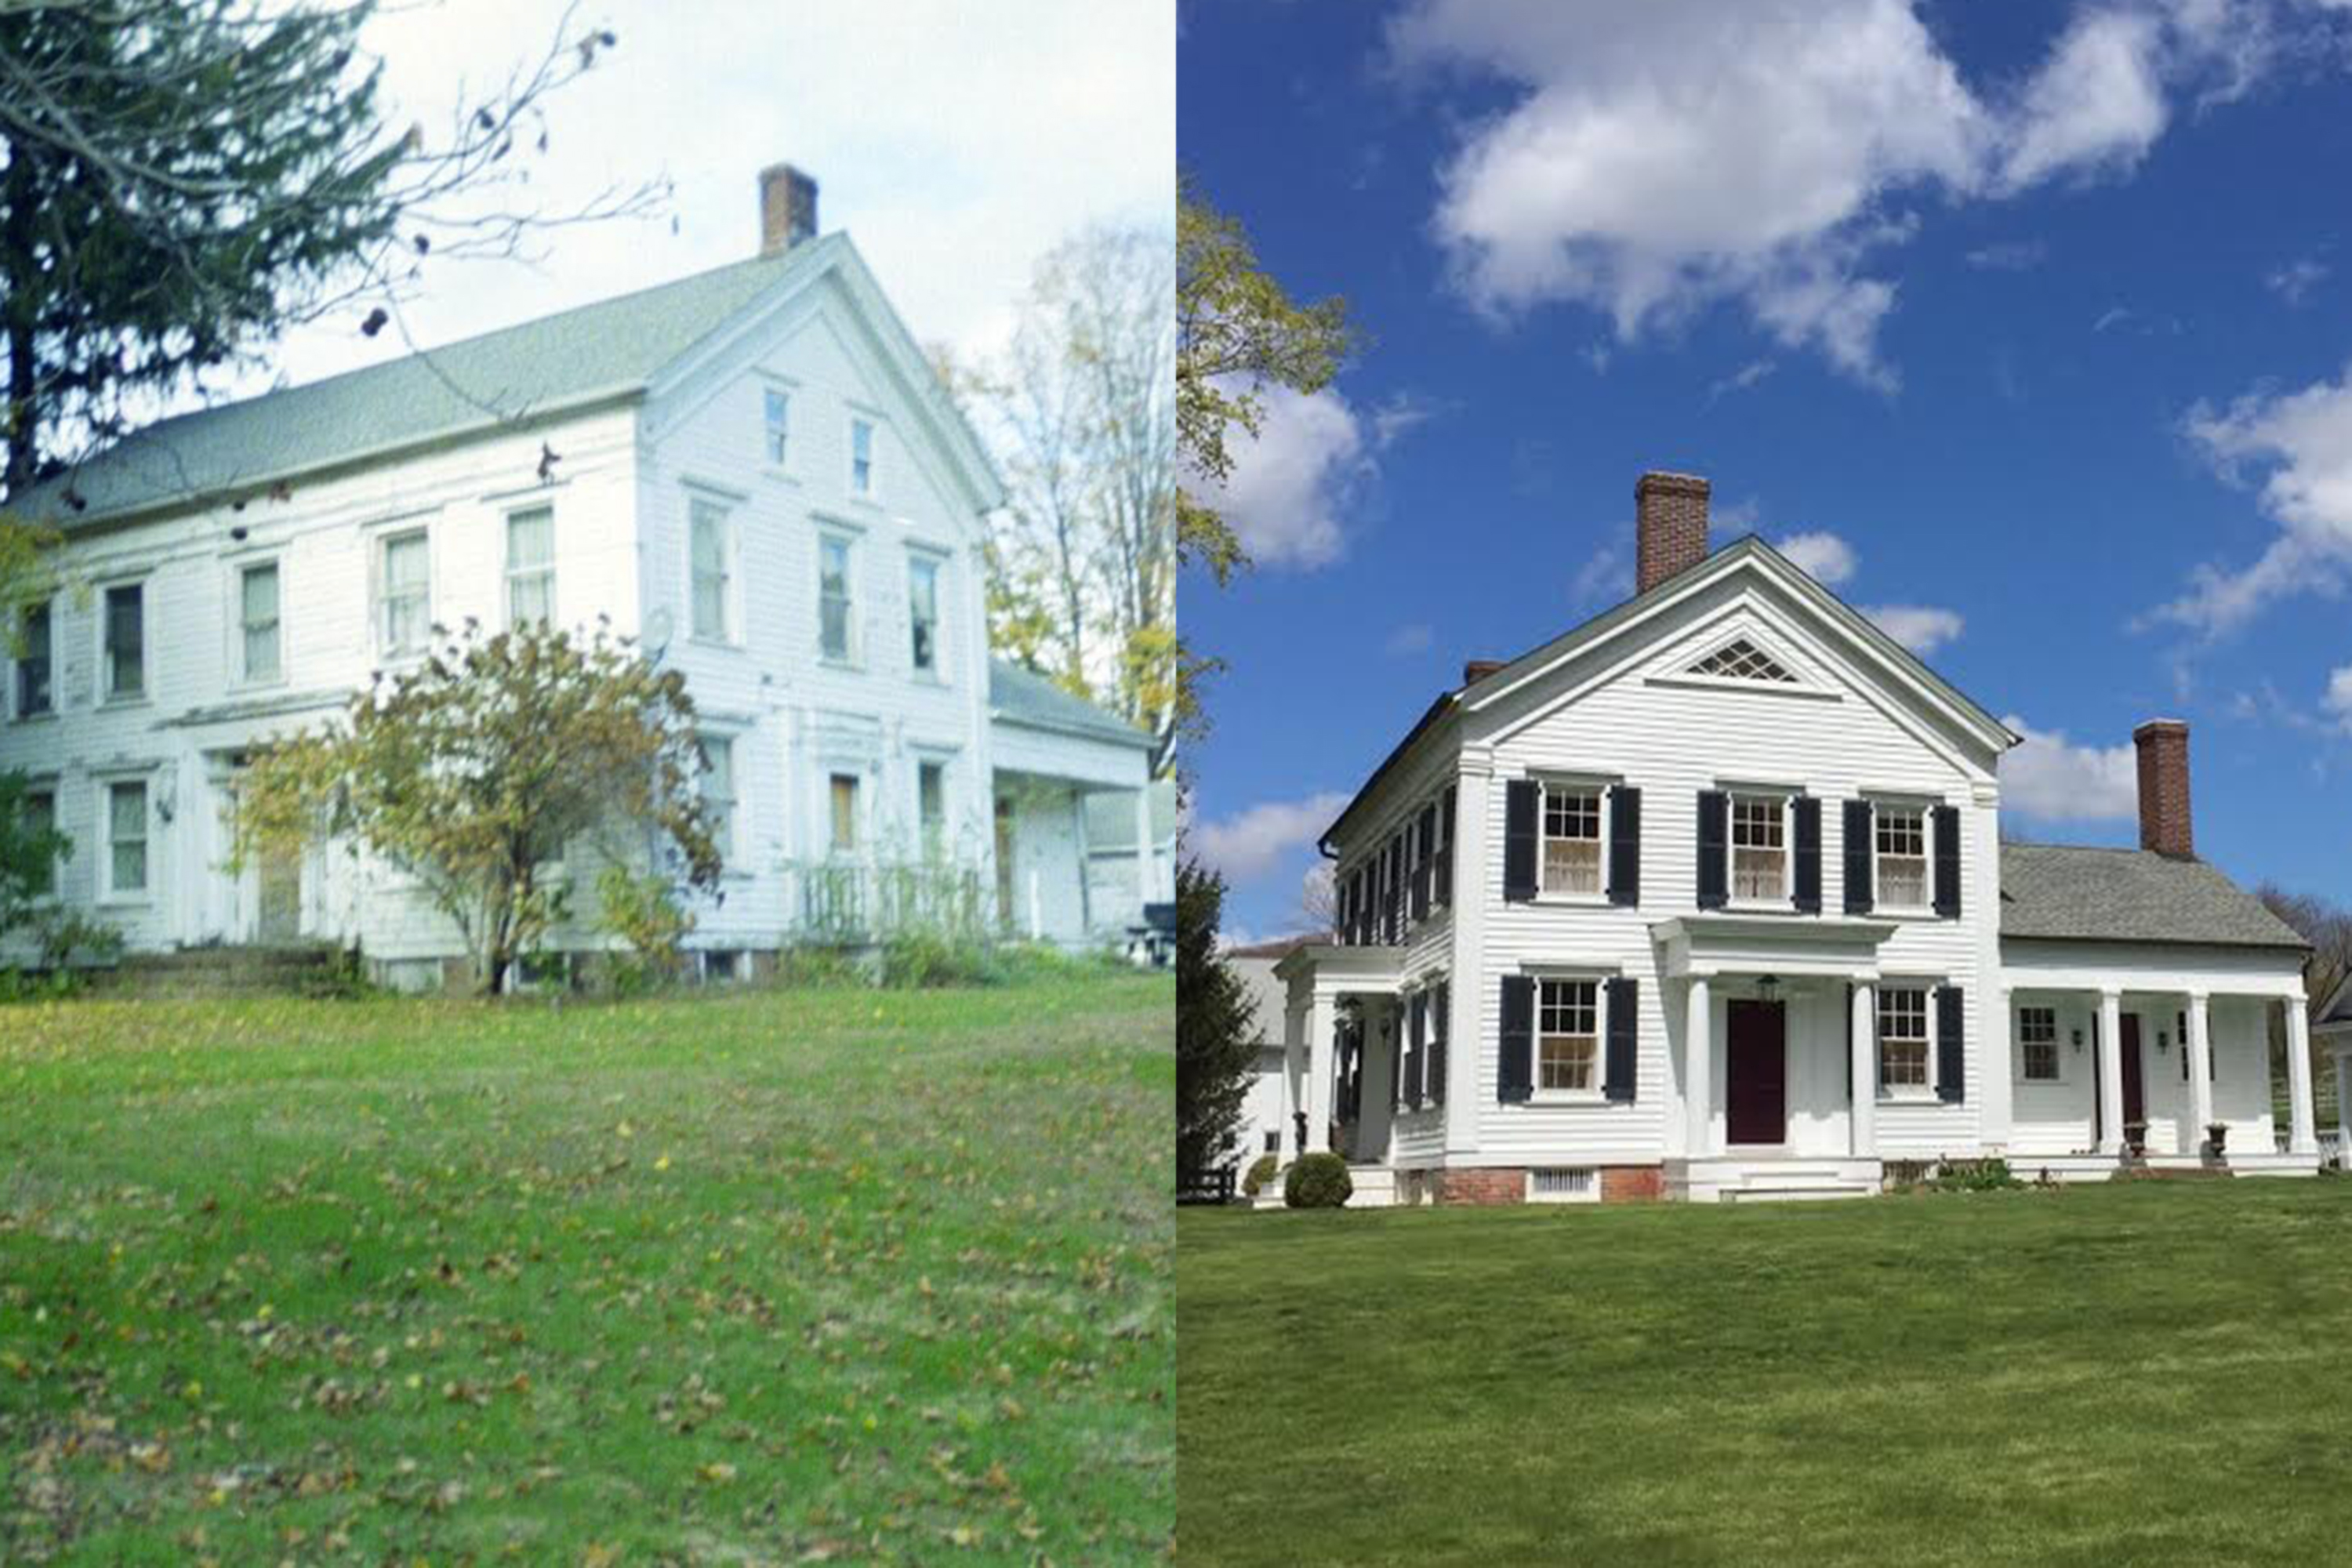 Renovated Farmhouse Before And After How To Renovate A Historic Homeand Live To Tell The Tale